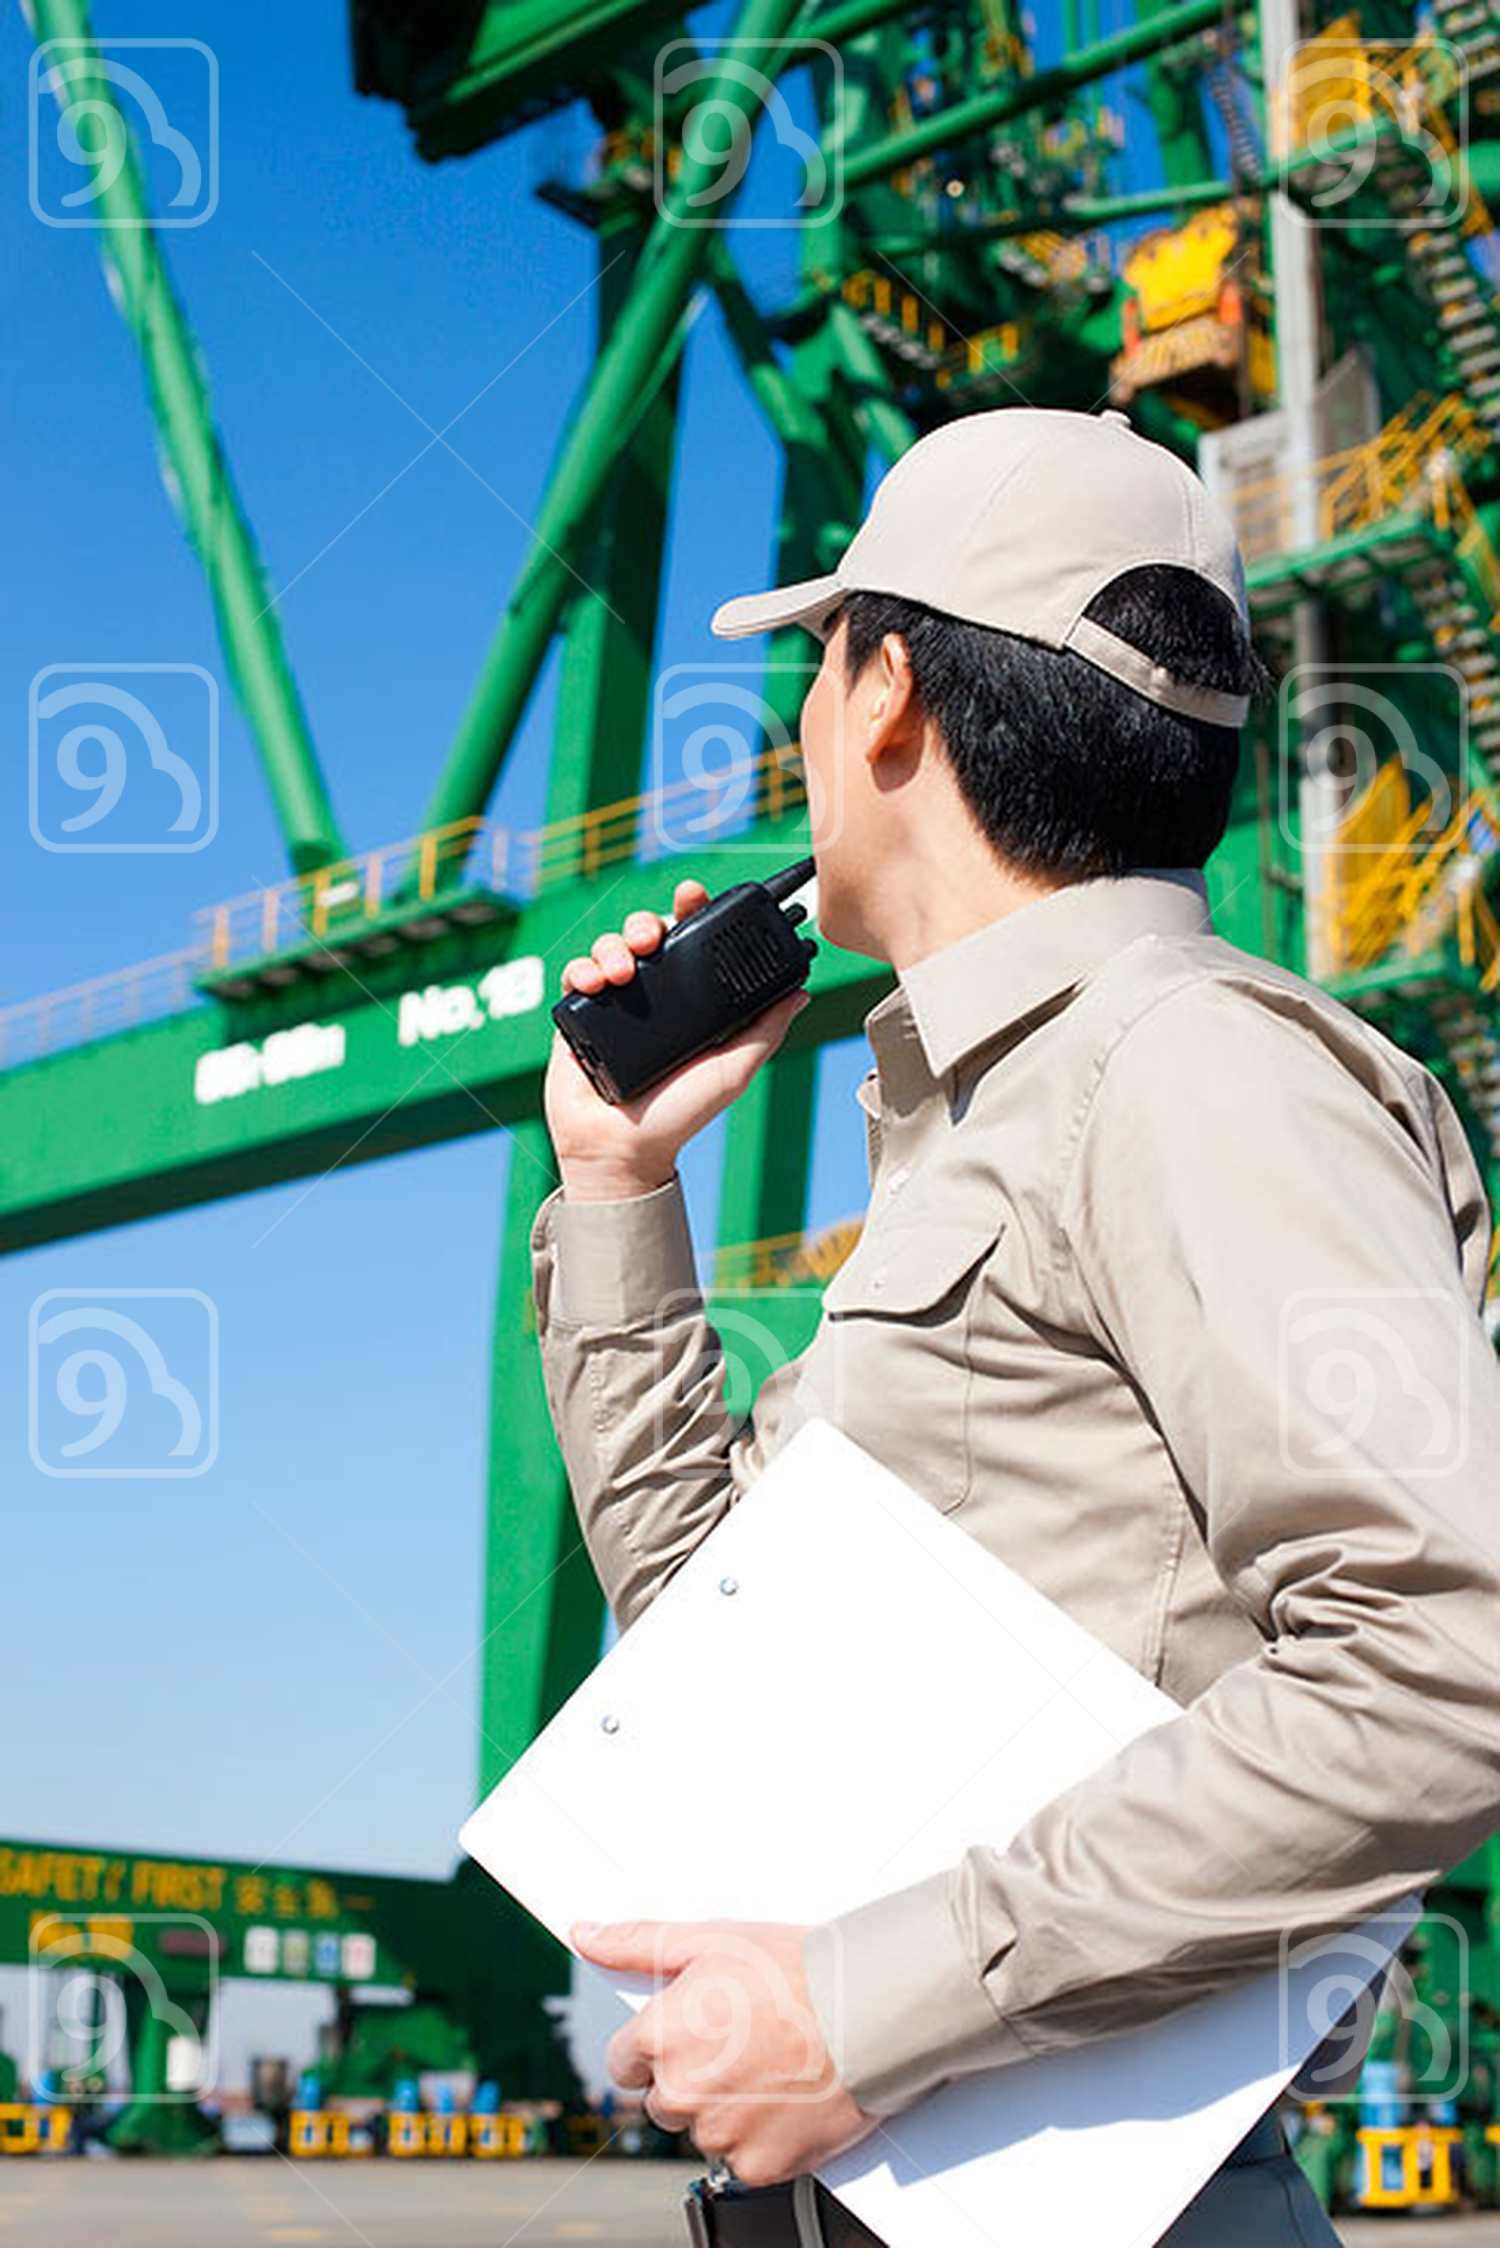 Male Chinese shipping industry worker talking on walkie-talkie with crane in the background